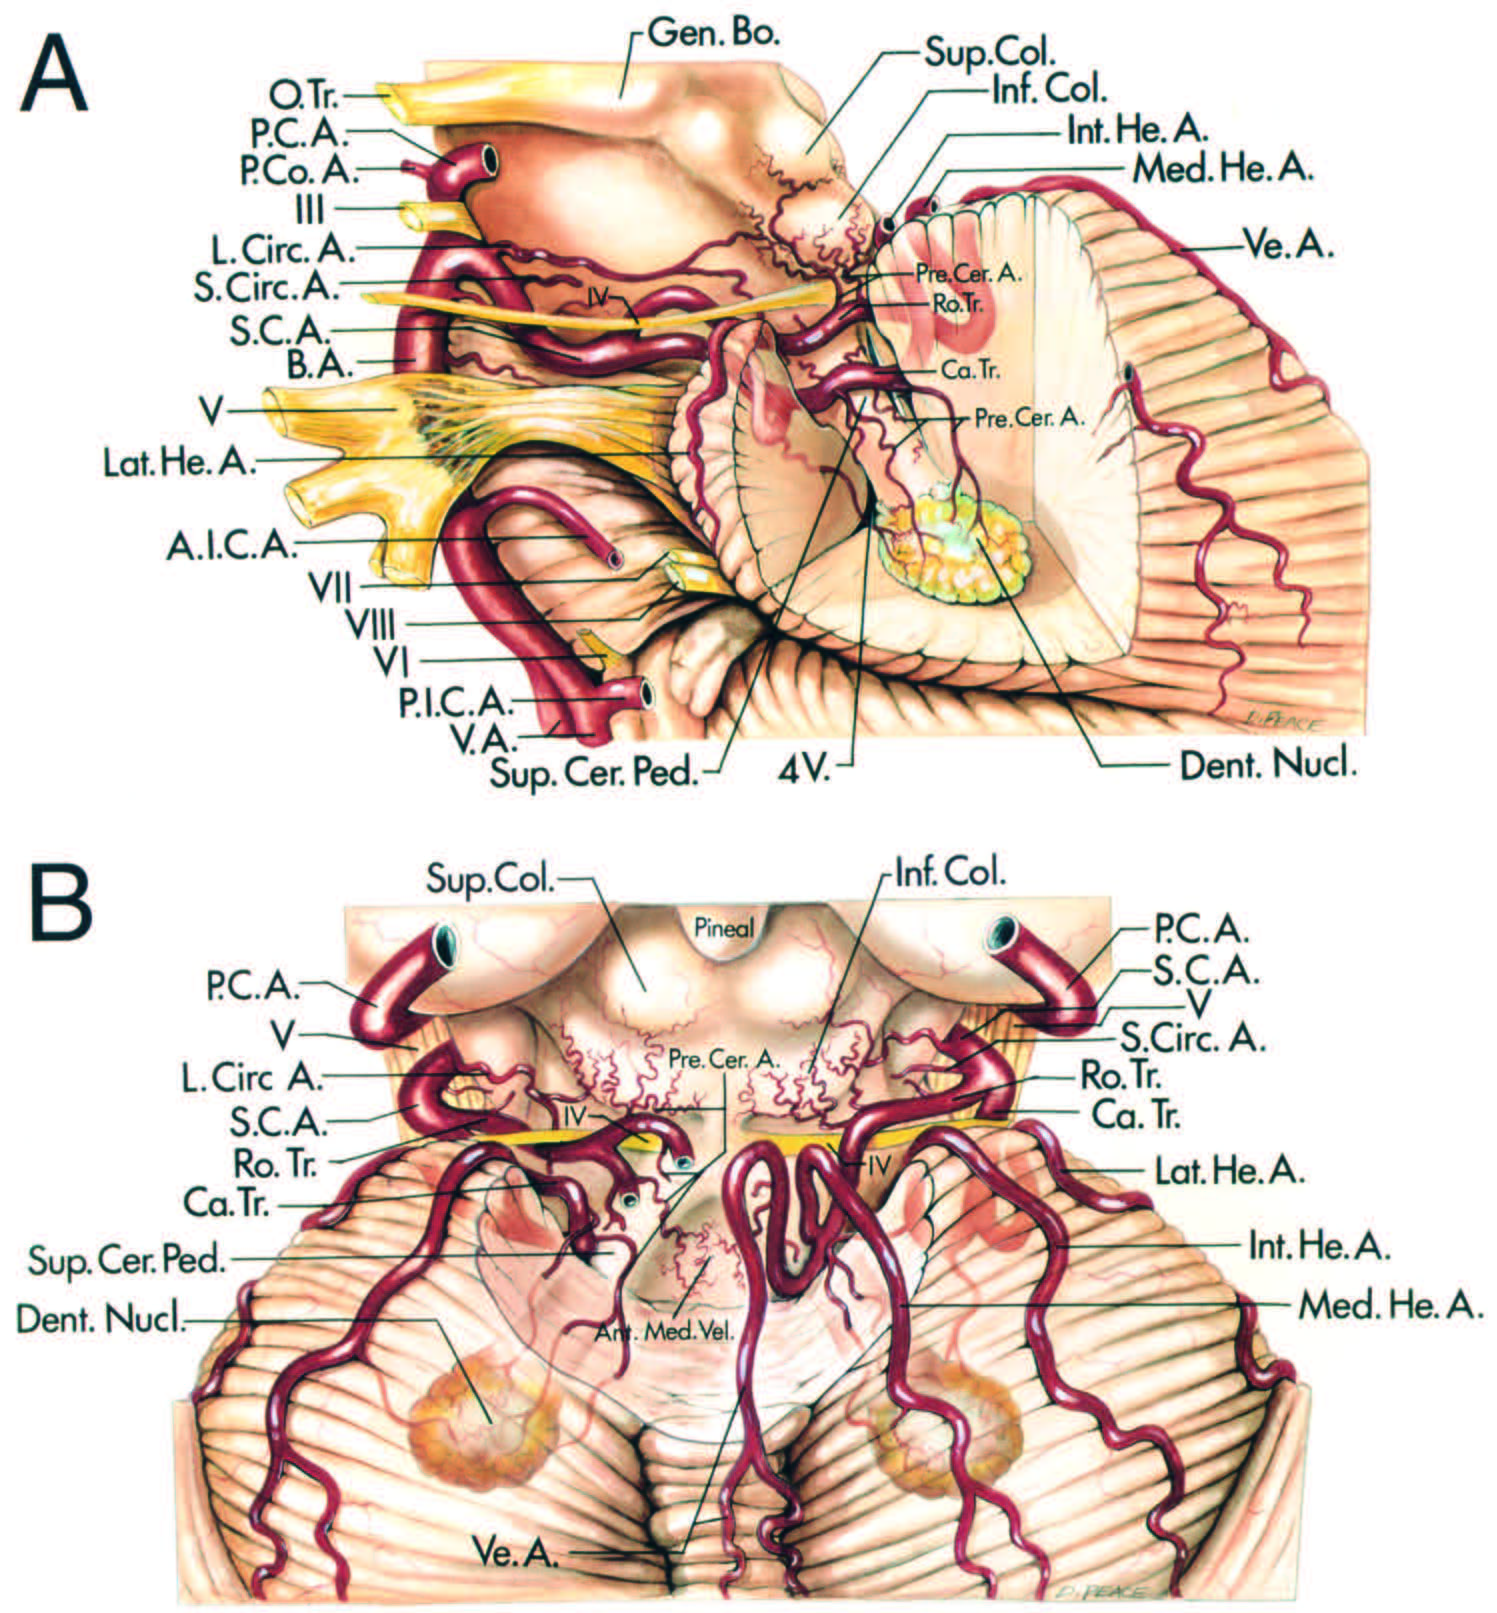 FIGURE 2.7. Relationships of the SCA. A, left lateral view of the SCA with part of the cerebellum removed to show the termination of the superior cerebellar peduncle in the dentate nucleus. The main trunk of the SCA passes below the oculomotor and trochlear nerves and above the trigeminal nerve and splits into rostral and caudal trunks. The optic tract and short circumflex arteries pass around the brainstem. The precerebellar arteries arise in the cerebellomesencephalic fissure, supply the adjoining cerebellum and the inferior colliculus, and send branches along the superior cerebellar peduncle to the dentate nucleus. The superior colliculus is supplied predominantly by the PICA. The rostral and caudal trunks split into vermian and lateral, medial, and intermediate hemispheric arteries. B, superior view with the superior lip of cerebellomesencephalic fissure removed to show branches within the fissure. The circumflex perforating arteries terminate in the inferior colliculus and the region of the junction of the superior and middle cerebellar peduncles. The precerebellar branches pass along the superior cerebellar peduncles to the dentate nucleus. The right half of the vermis is supplied by a large vermian artery and the hemispheric surface is supplied by medial, intermediate, and lateral hemispheric arteries. (From, Hardy DG, Peace DA, Rhoton AL Jr: Microsurgical anatomy of the superior cerebellar artery. Neurosurgery 6:10–28, 1980 [19].) A., artery; A.I.C.A., anteroinferior cerebellar artery; Ant., anterior; B., basilar; Bo., body; Ca., caudal; Cer., cerebellar; Circ., circumflex; Co., communicating; Coll., colliculus; Dent., dentate; Gen., geniculate; He., hemispheric; Inf., inferior; Int., intermediate; L., long; Lat., lateral; Med., medial; Nucl., nucleus; O., optic; P., posterior; P.C.A., posterior cerebral artery; Ped., peduncle; Ro., rostral; S., short; Sup., superior; Tr., trunk; V., ventricle or vertebral; Ve., vermian.